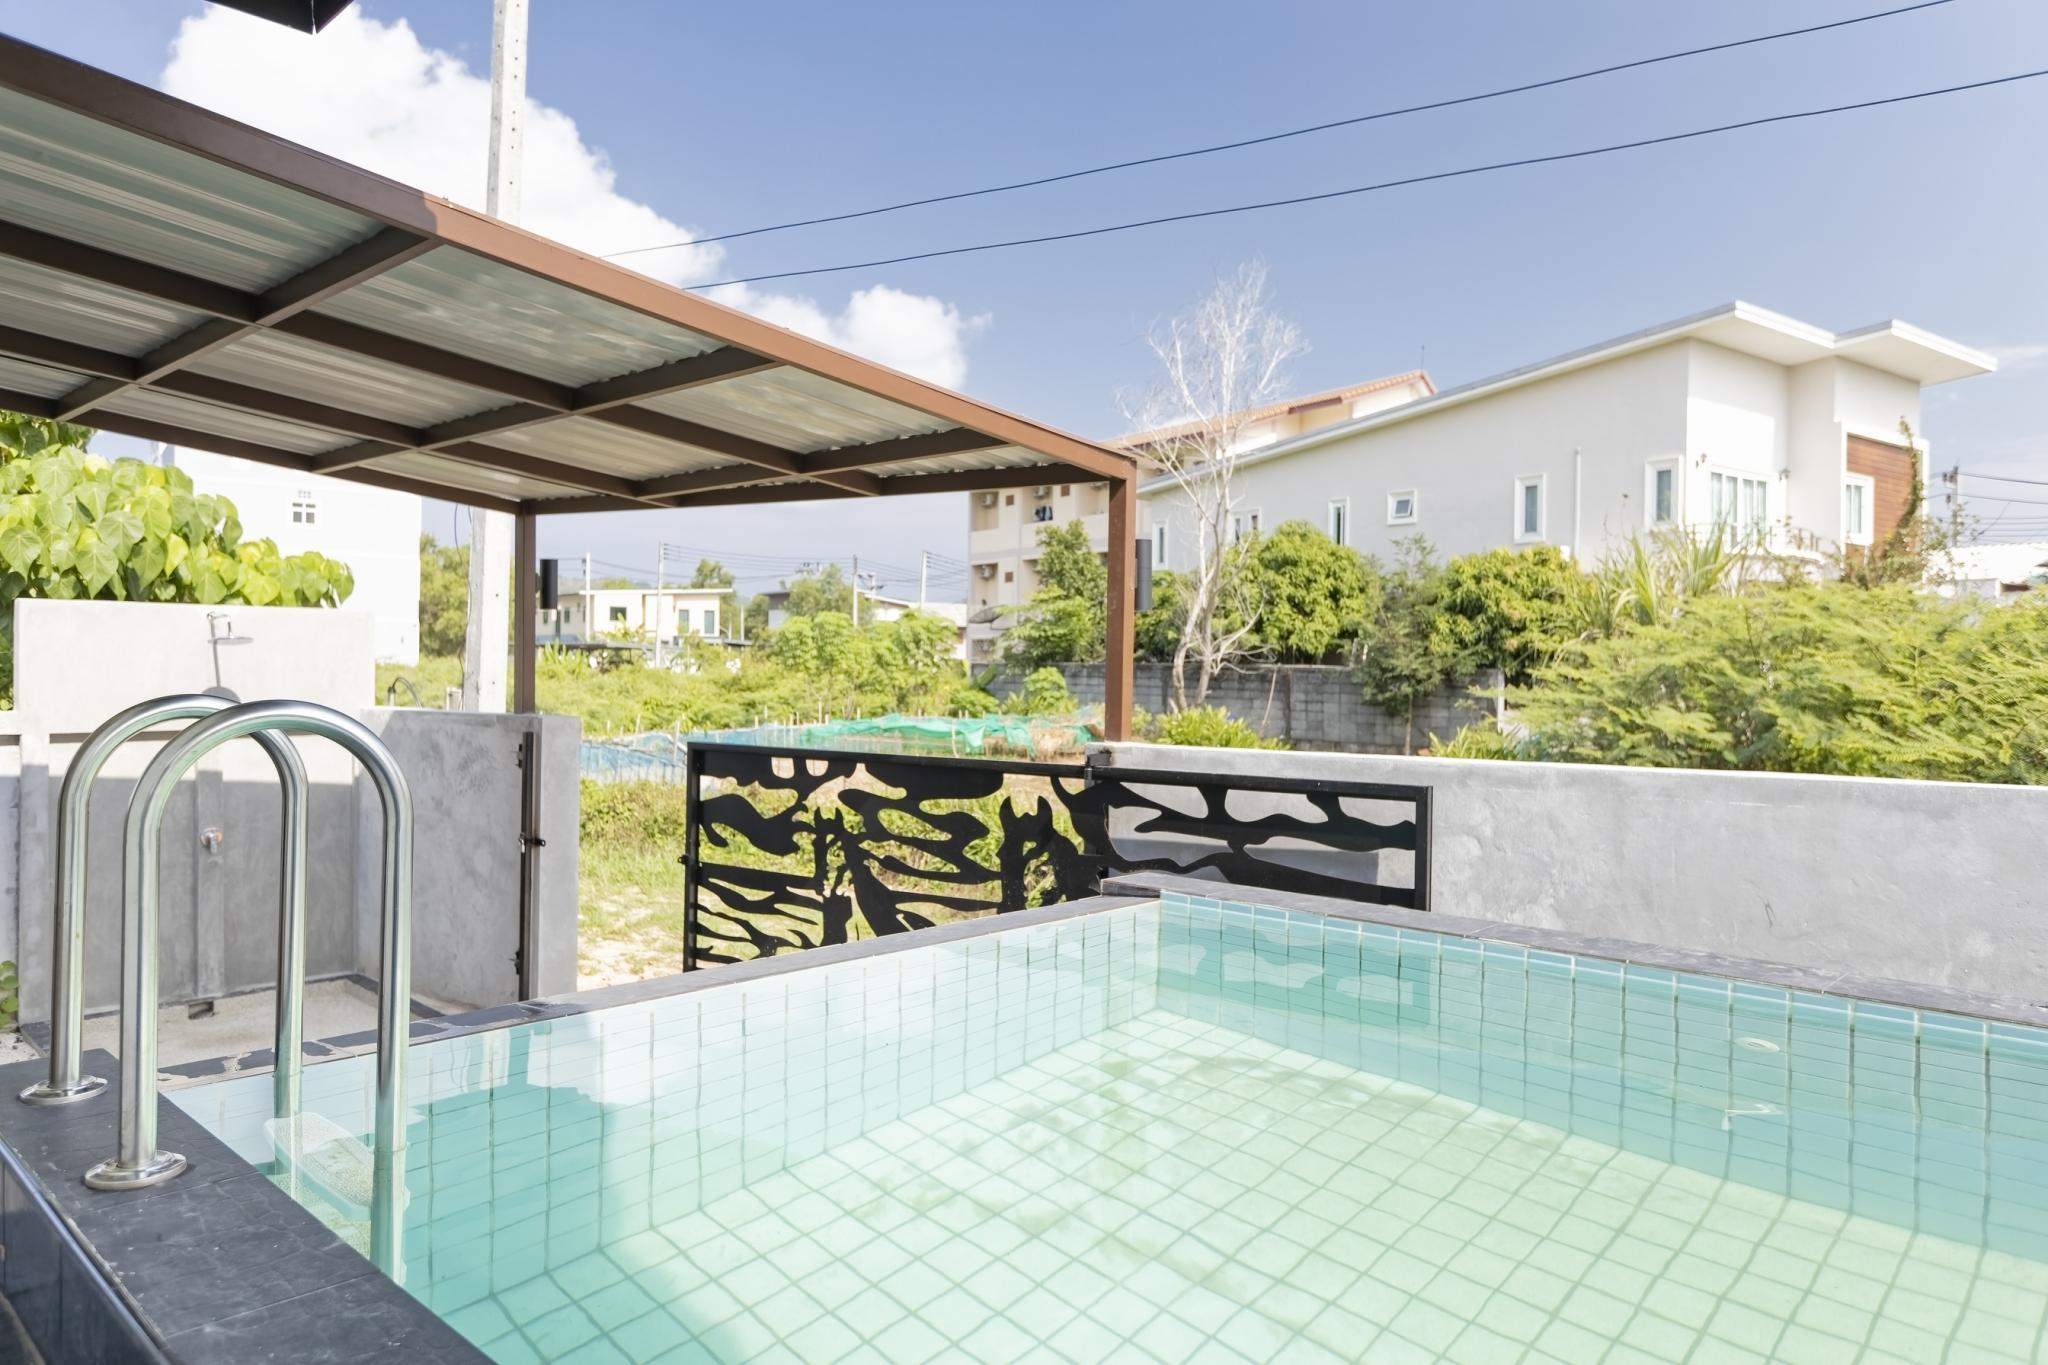 3 Bedroom House with pool in Thalang Phuket